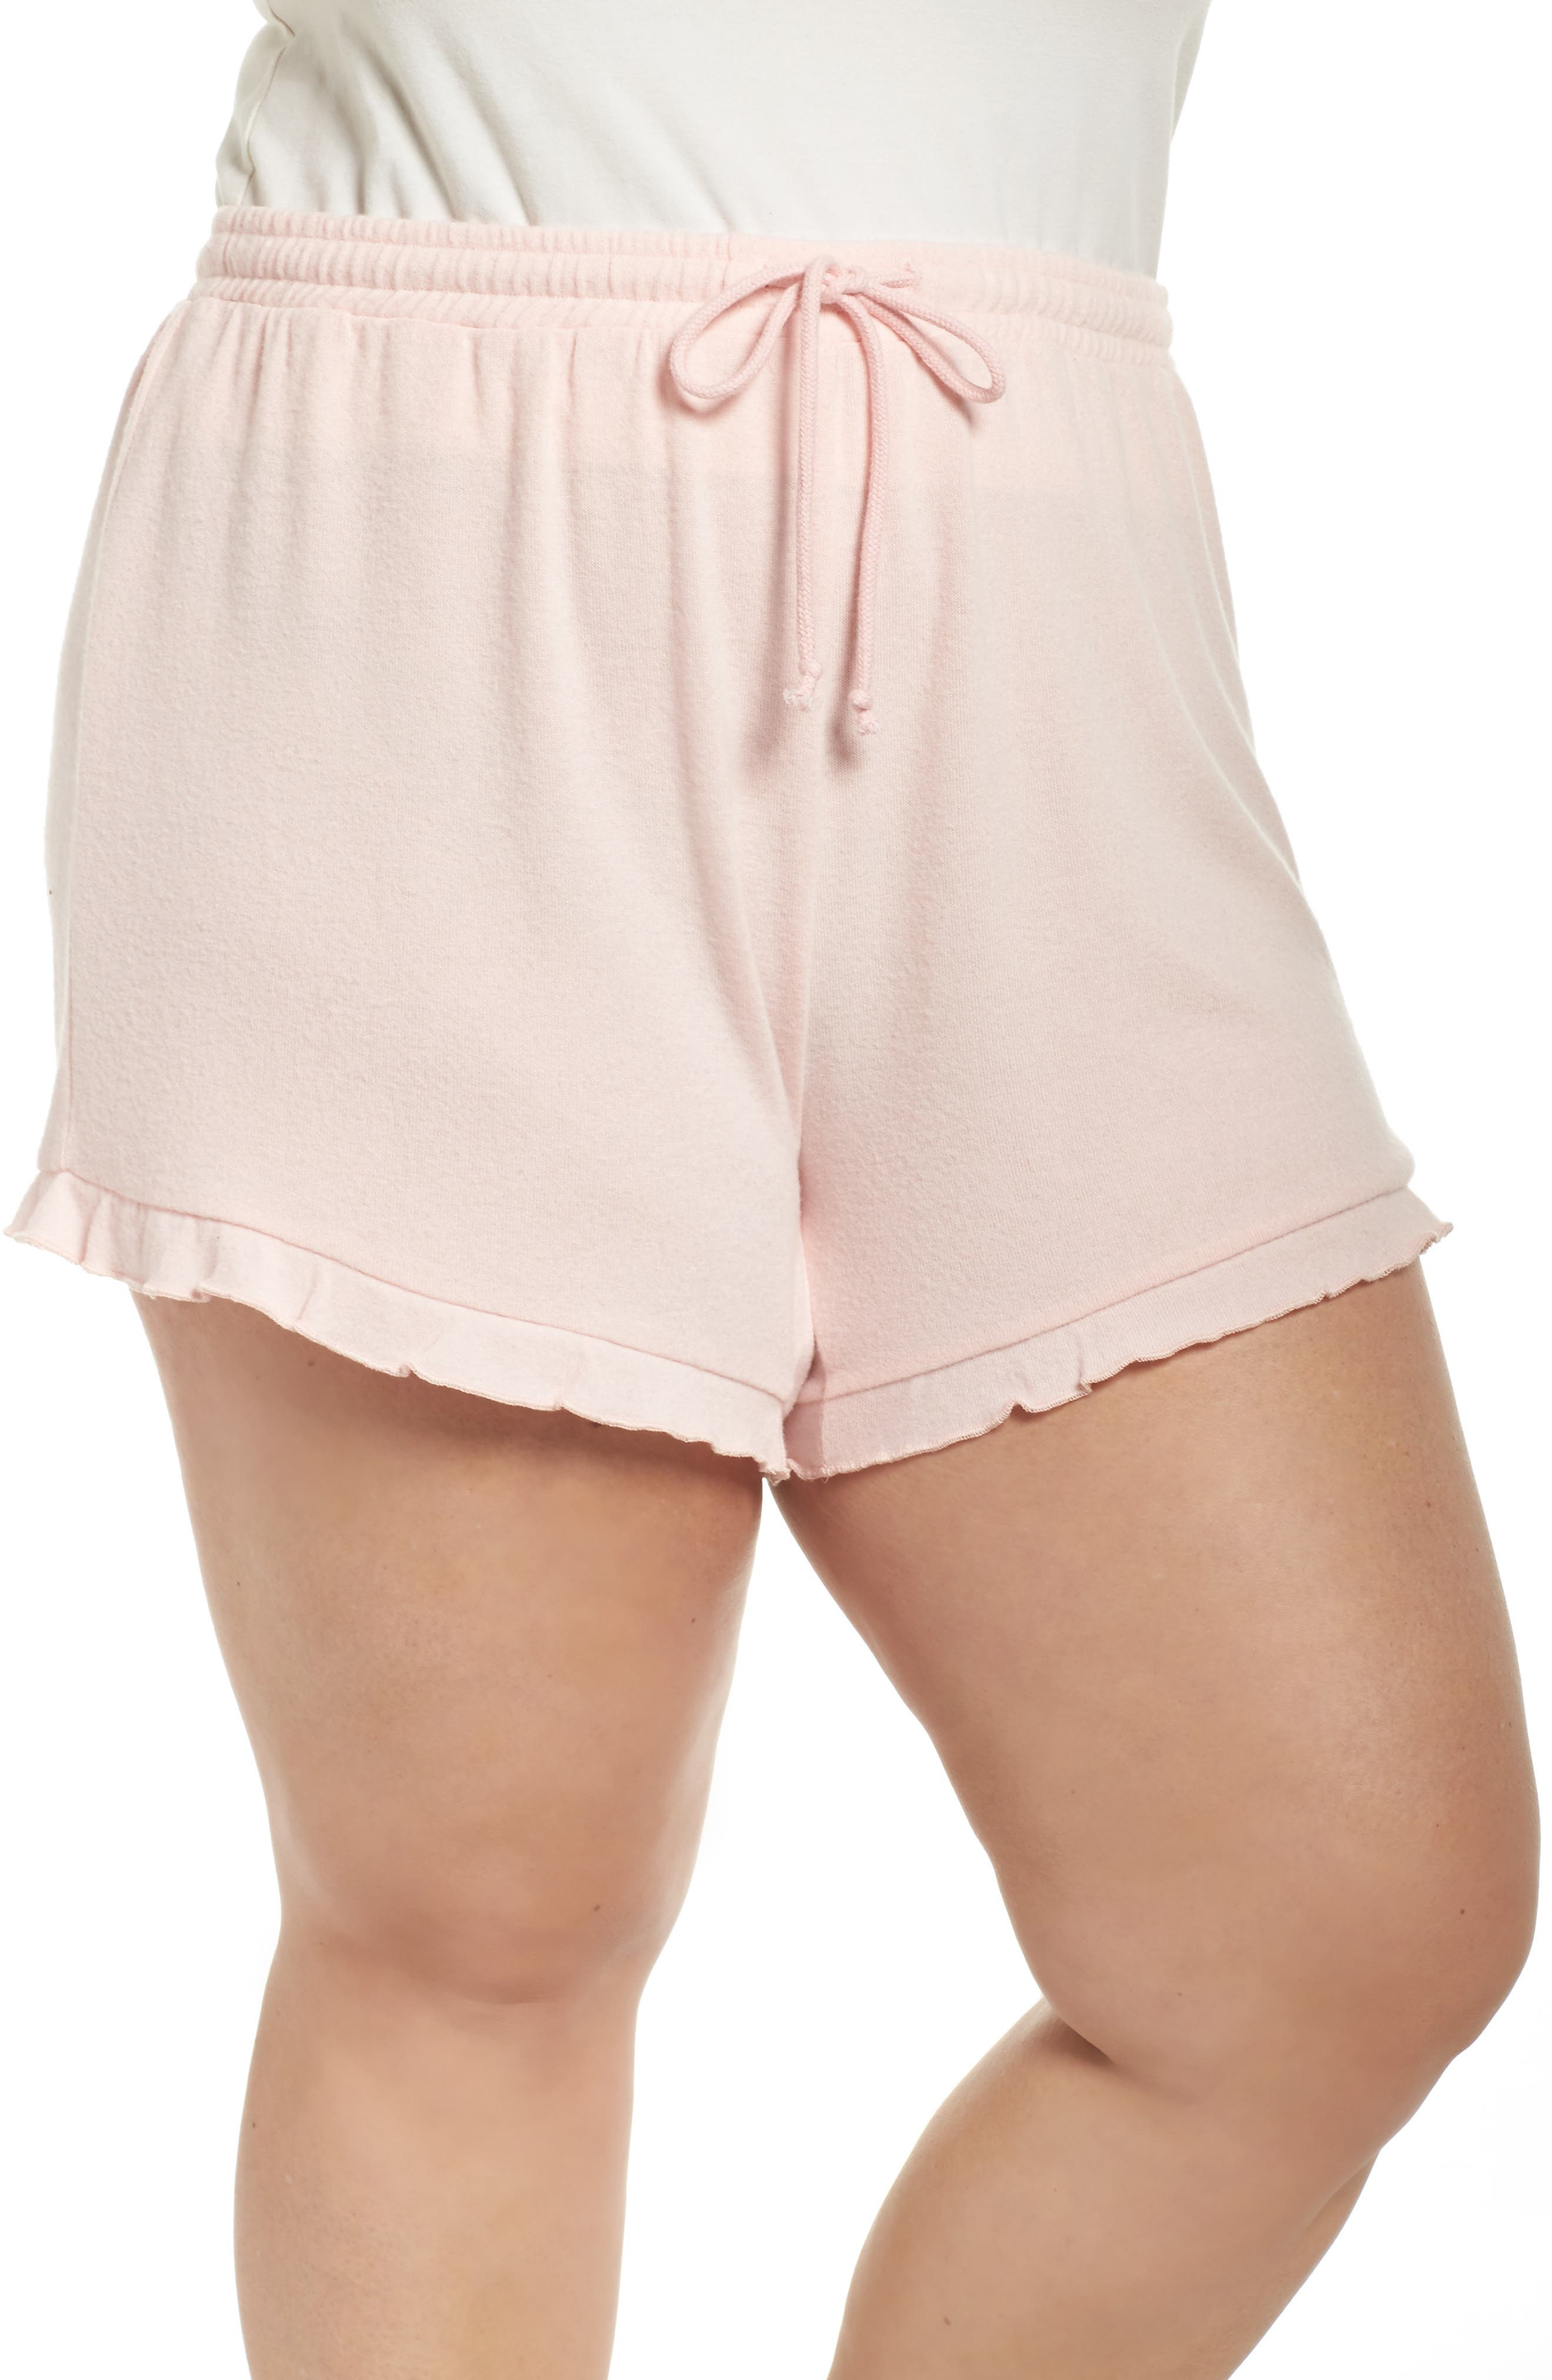 Ruffle Lounge Shorts,                         Main,                         color,